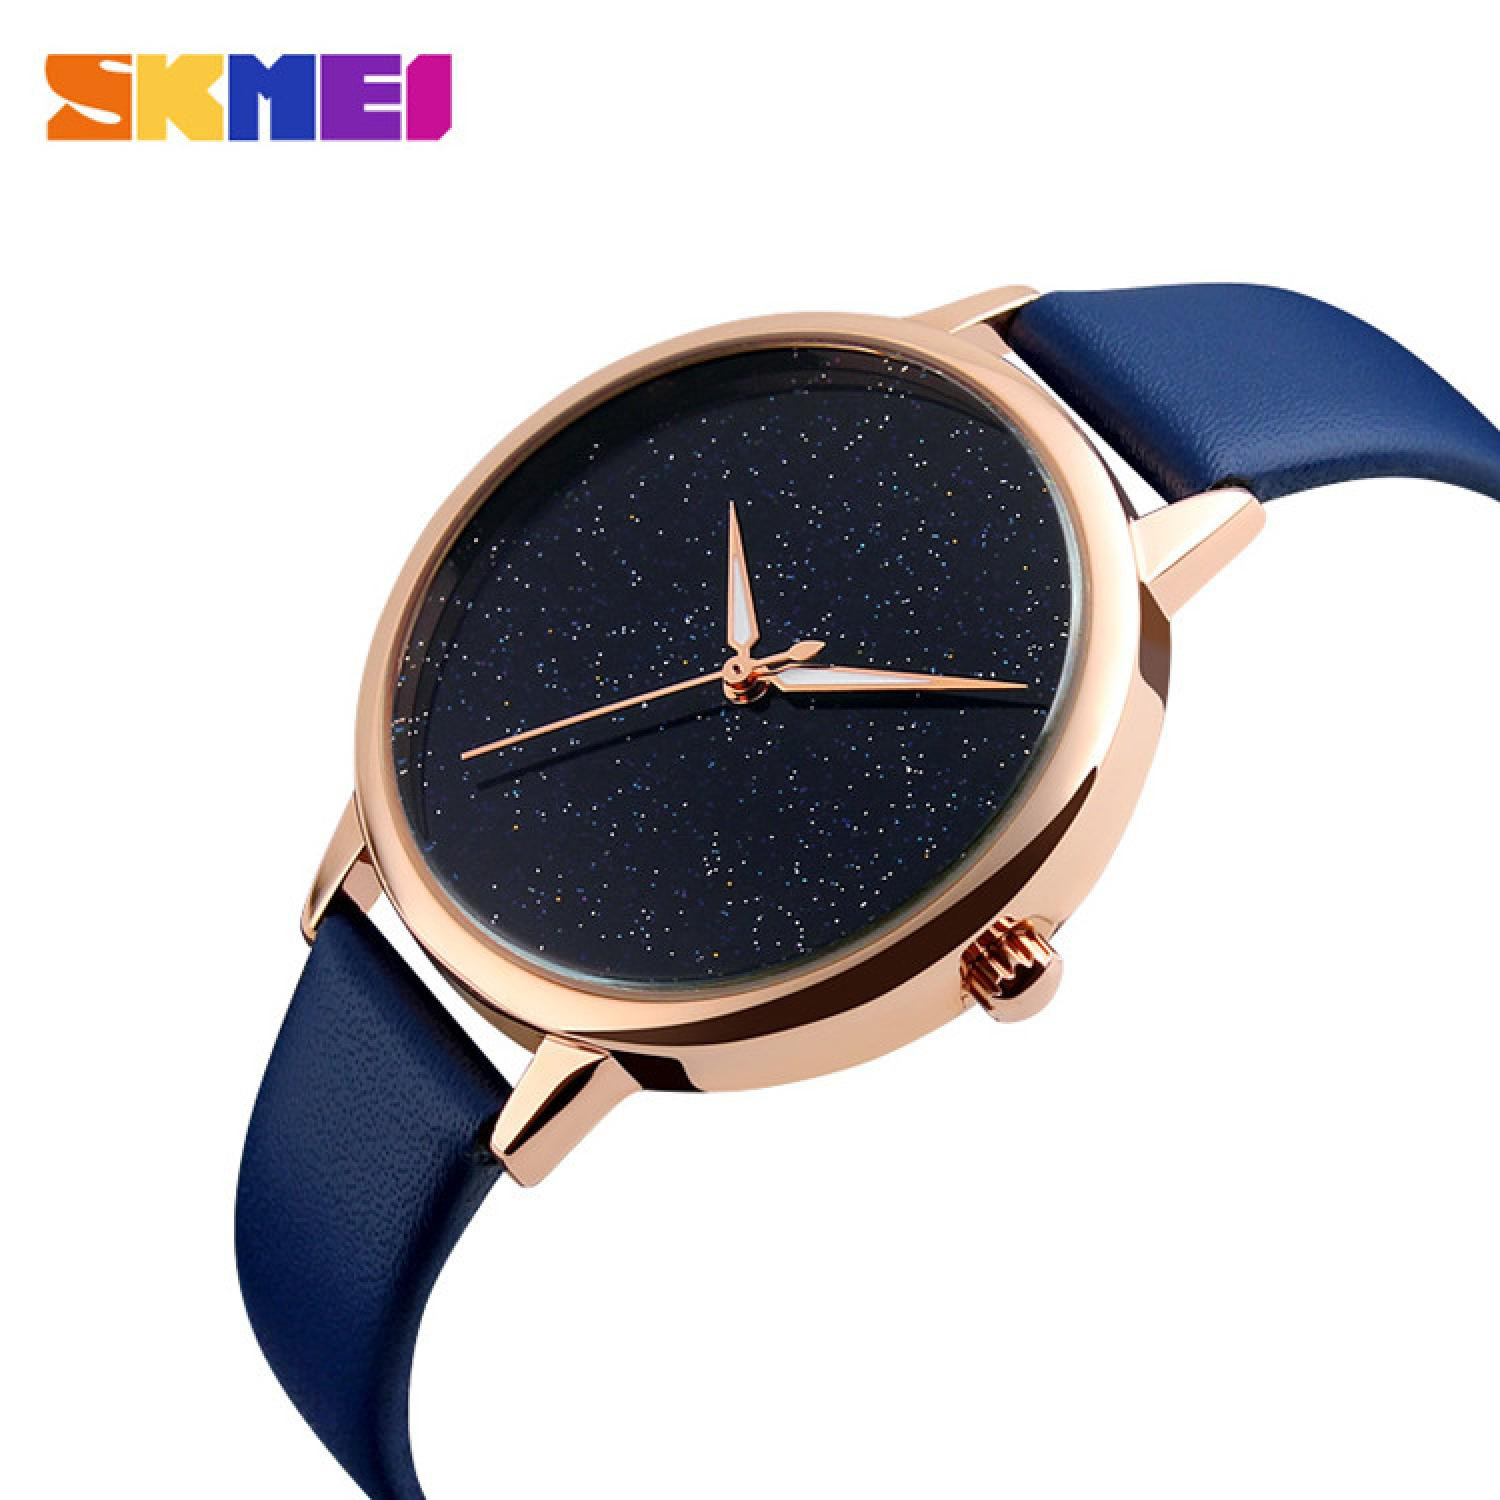 Jam Tangan Wanita SKMEI Analog Casual Leather Watch Original 9141CL Biru